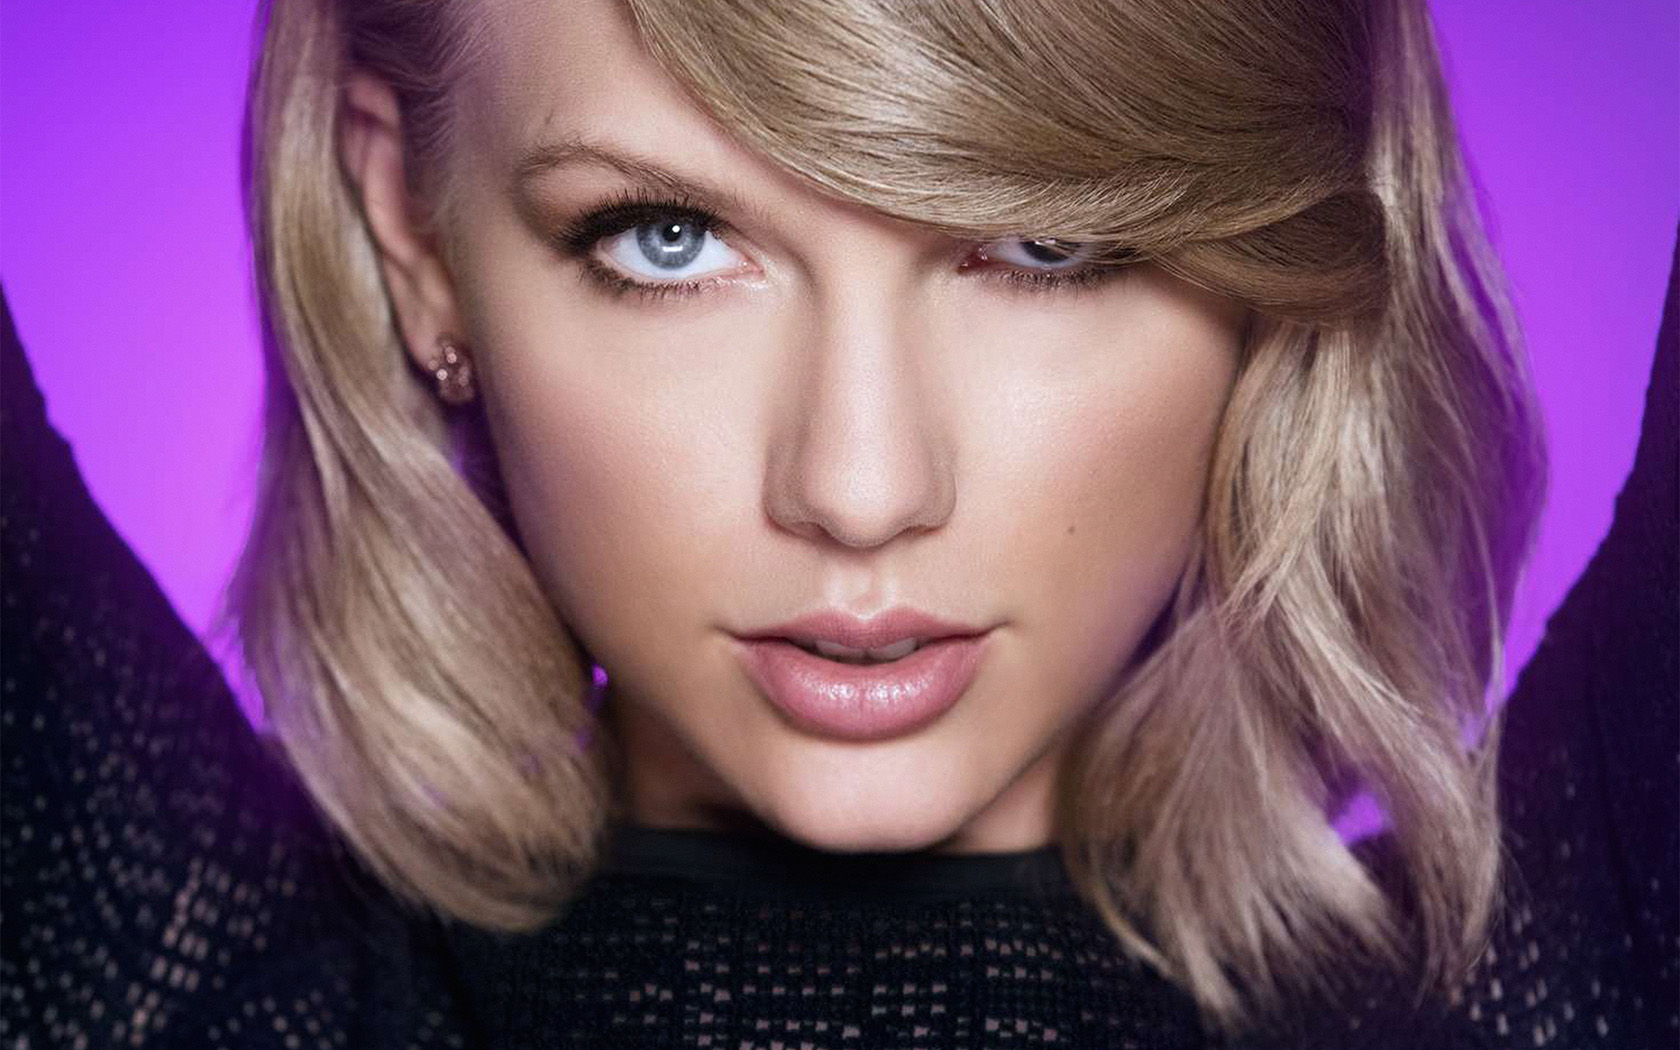 Cute Face Wallpaper For Iphone Hi53 Taylor Swift Face Music Celebrity Wallpaper